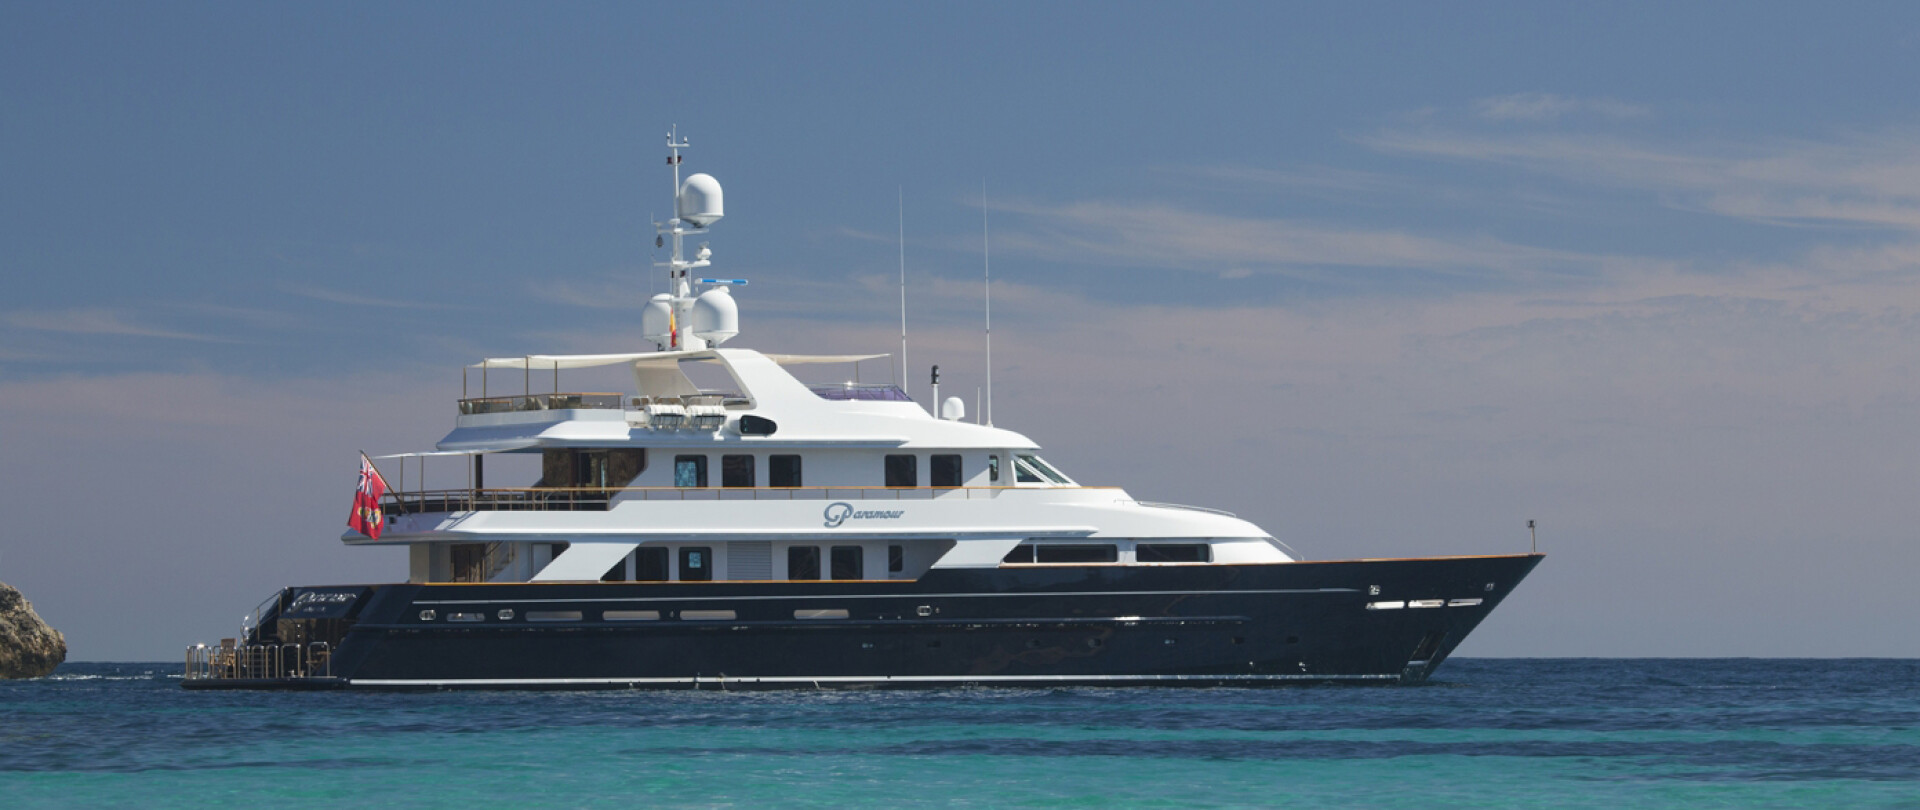 PARAMOUR Available for Event Charters photo 1